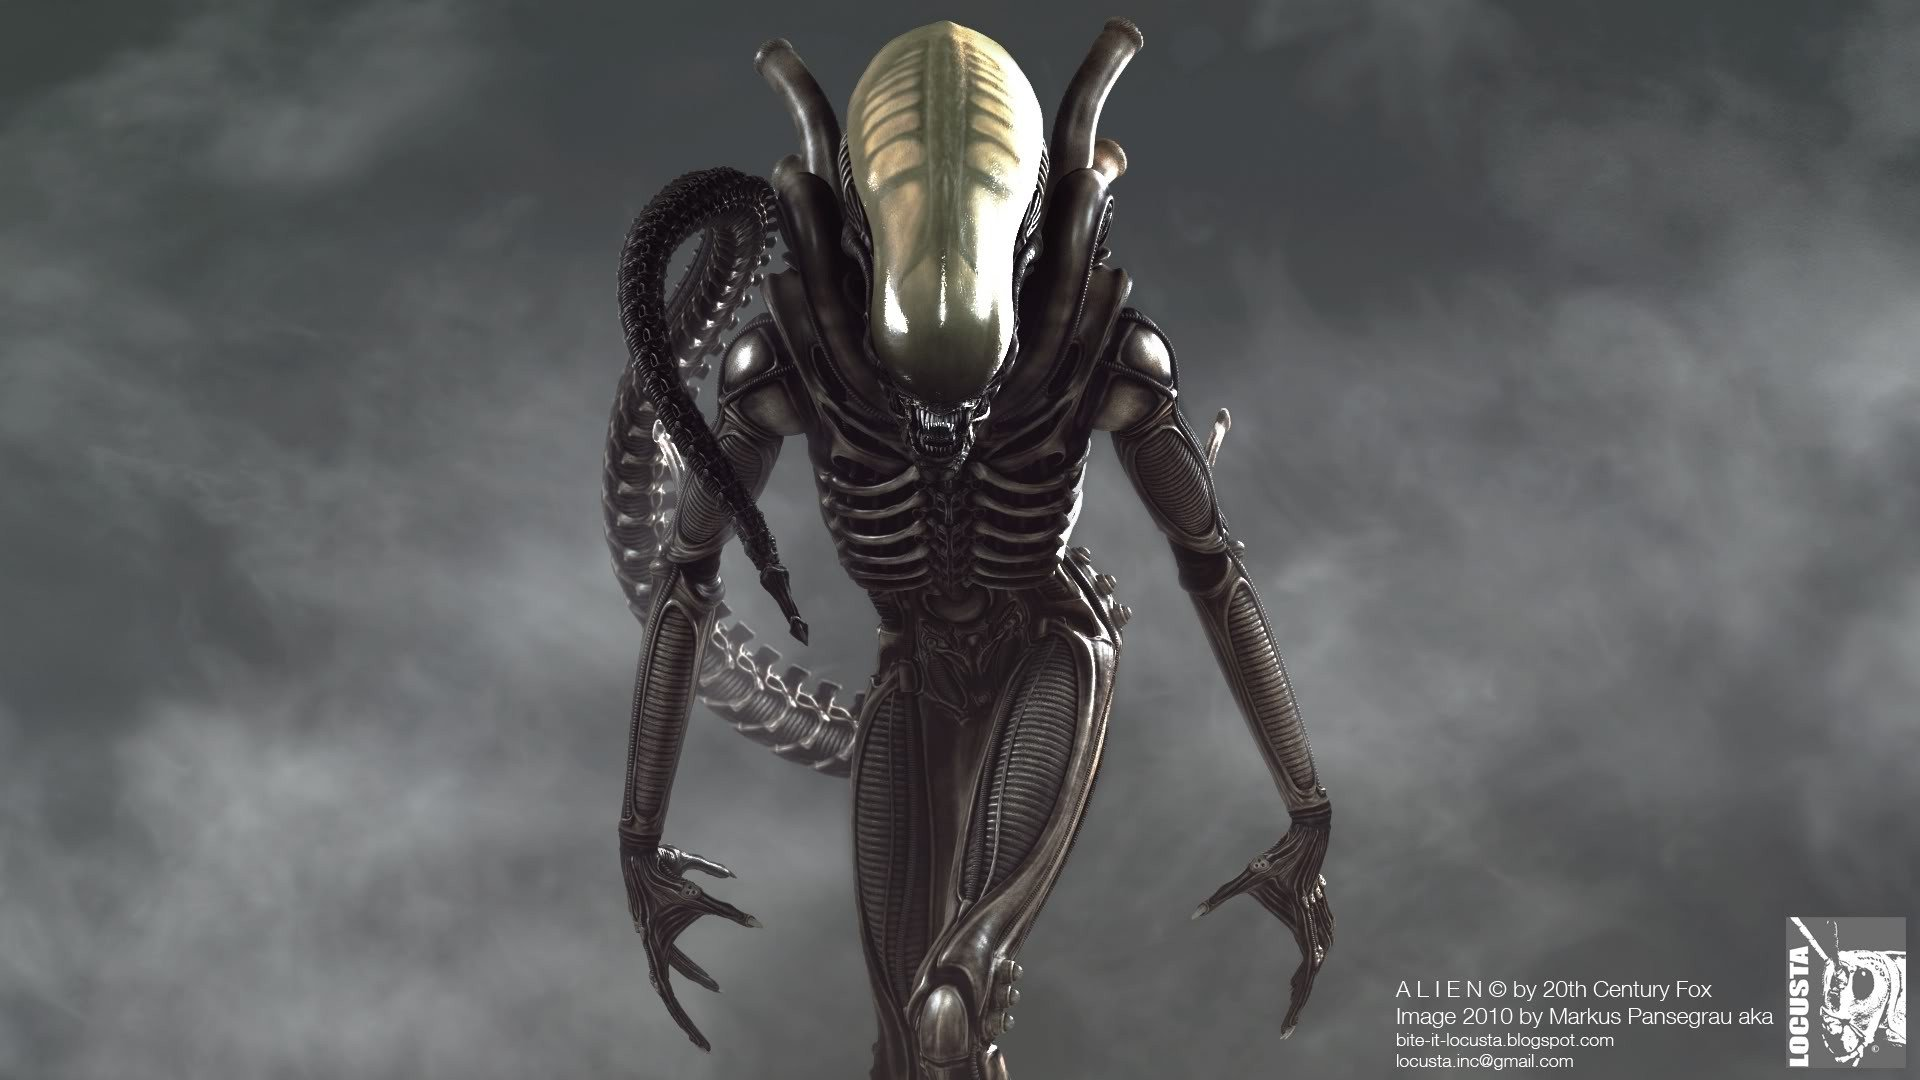 Xenomorph, Space Jockey, identical body types, which came